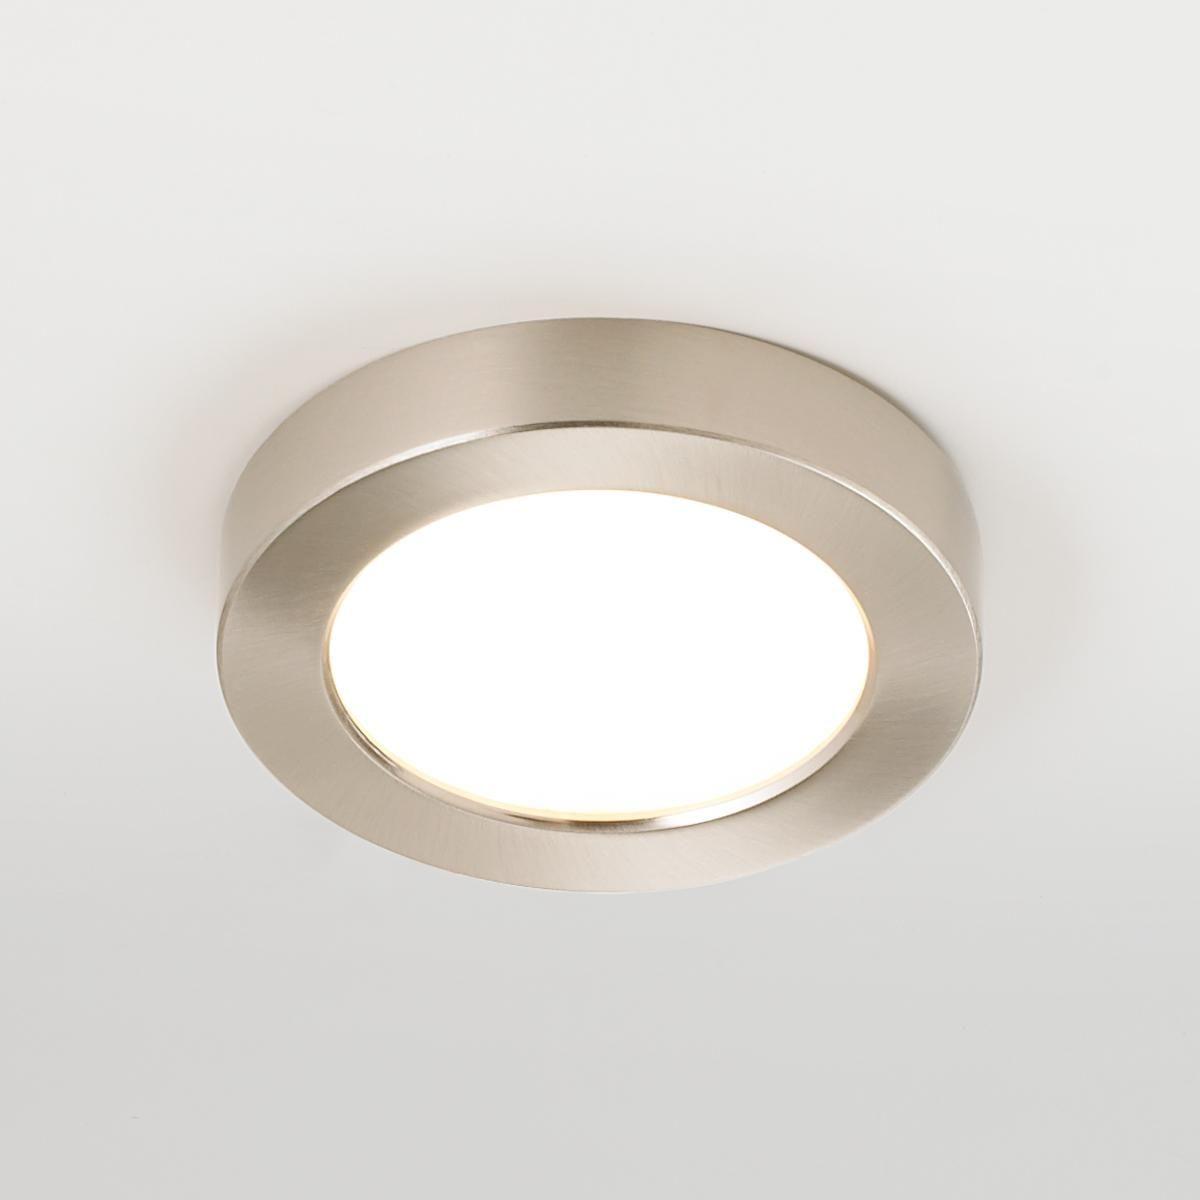 5 5 Led Simple Round Low Profile Ceiling Light Ceiling Lights Recessed Lighting Low Ceiling Lighting